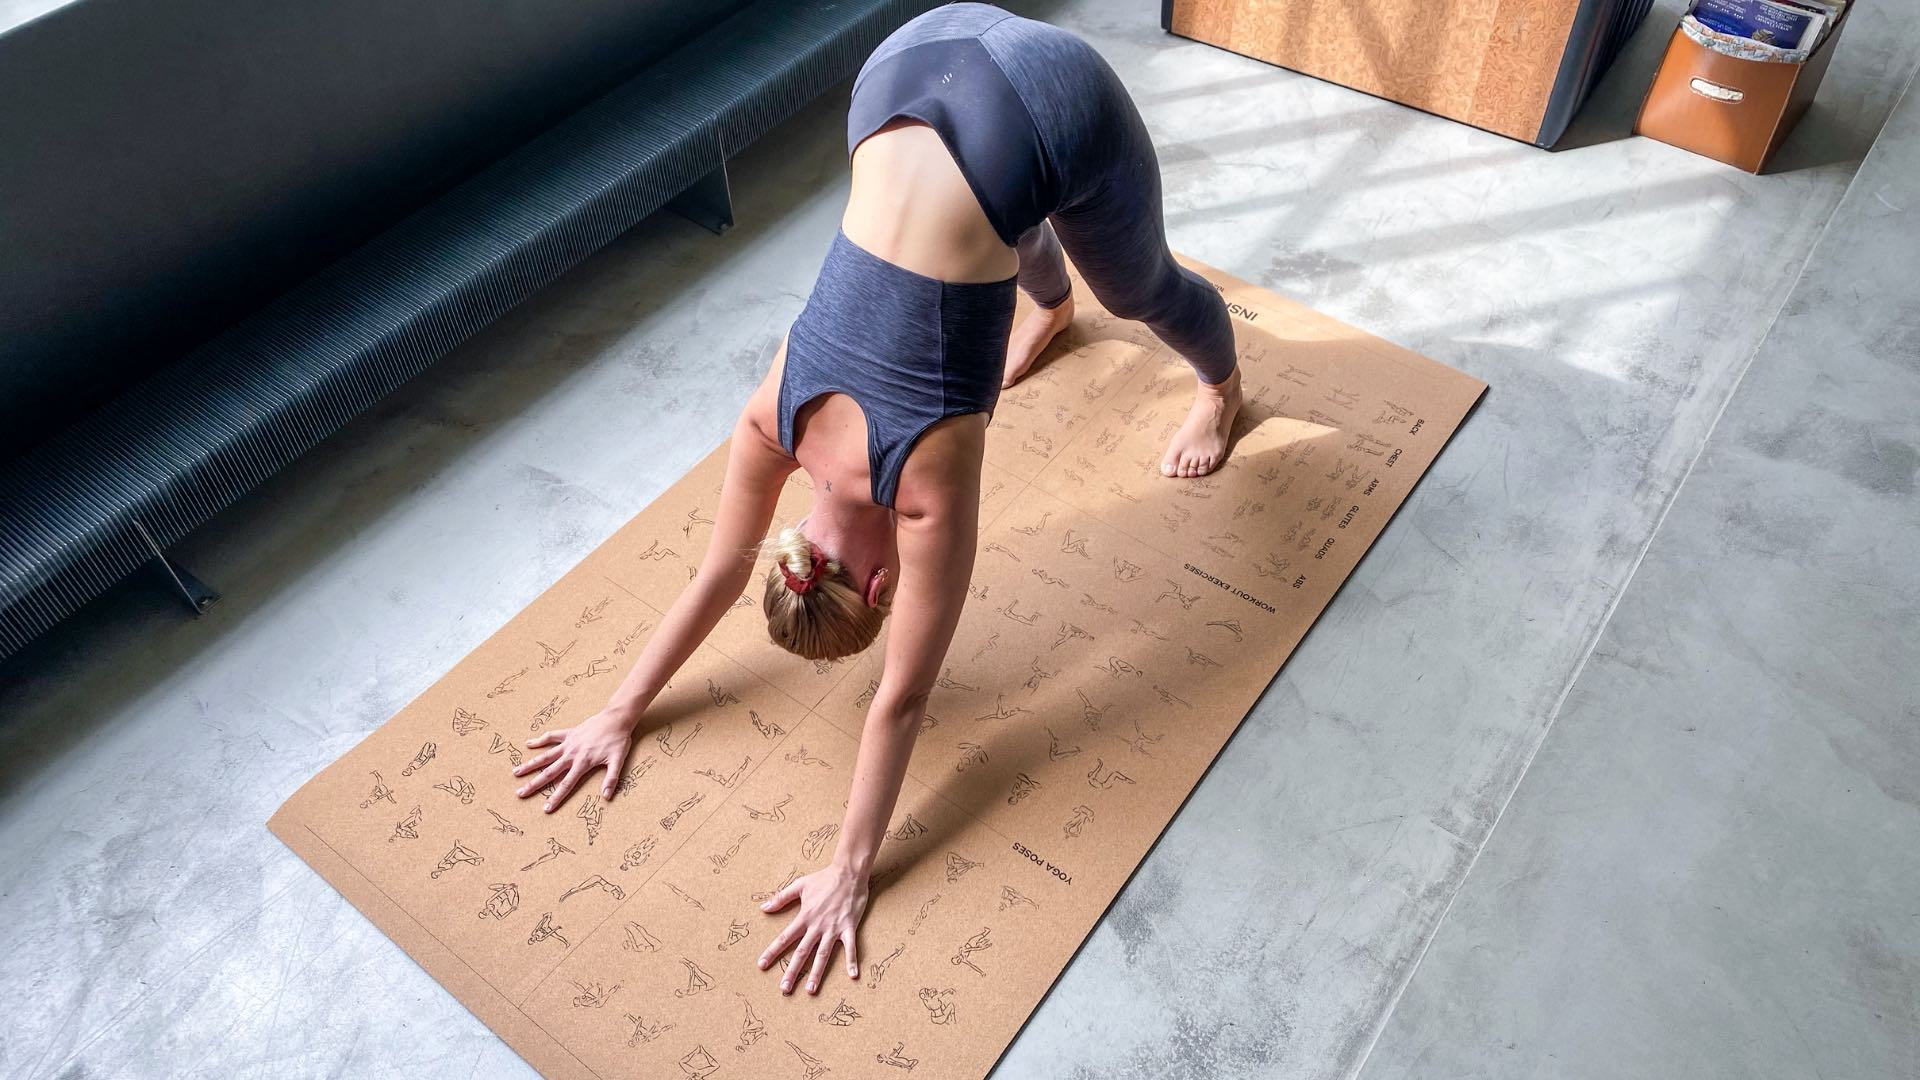 INSPIRATION oversized & instructional mat is great for working out from home